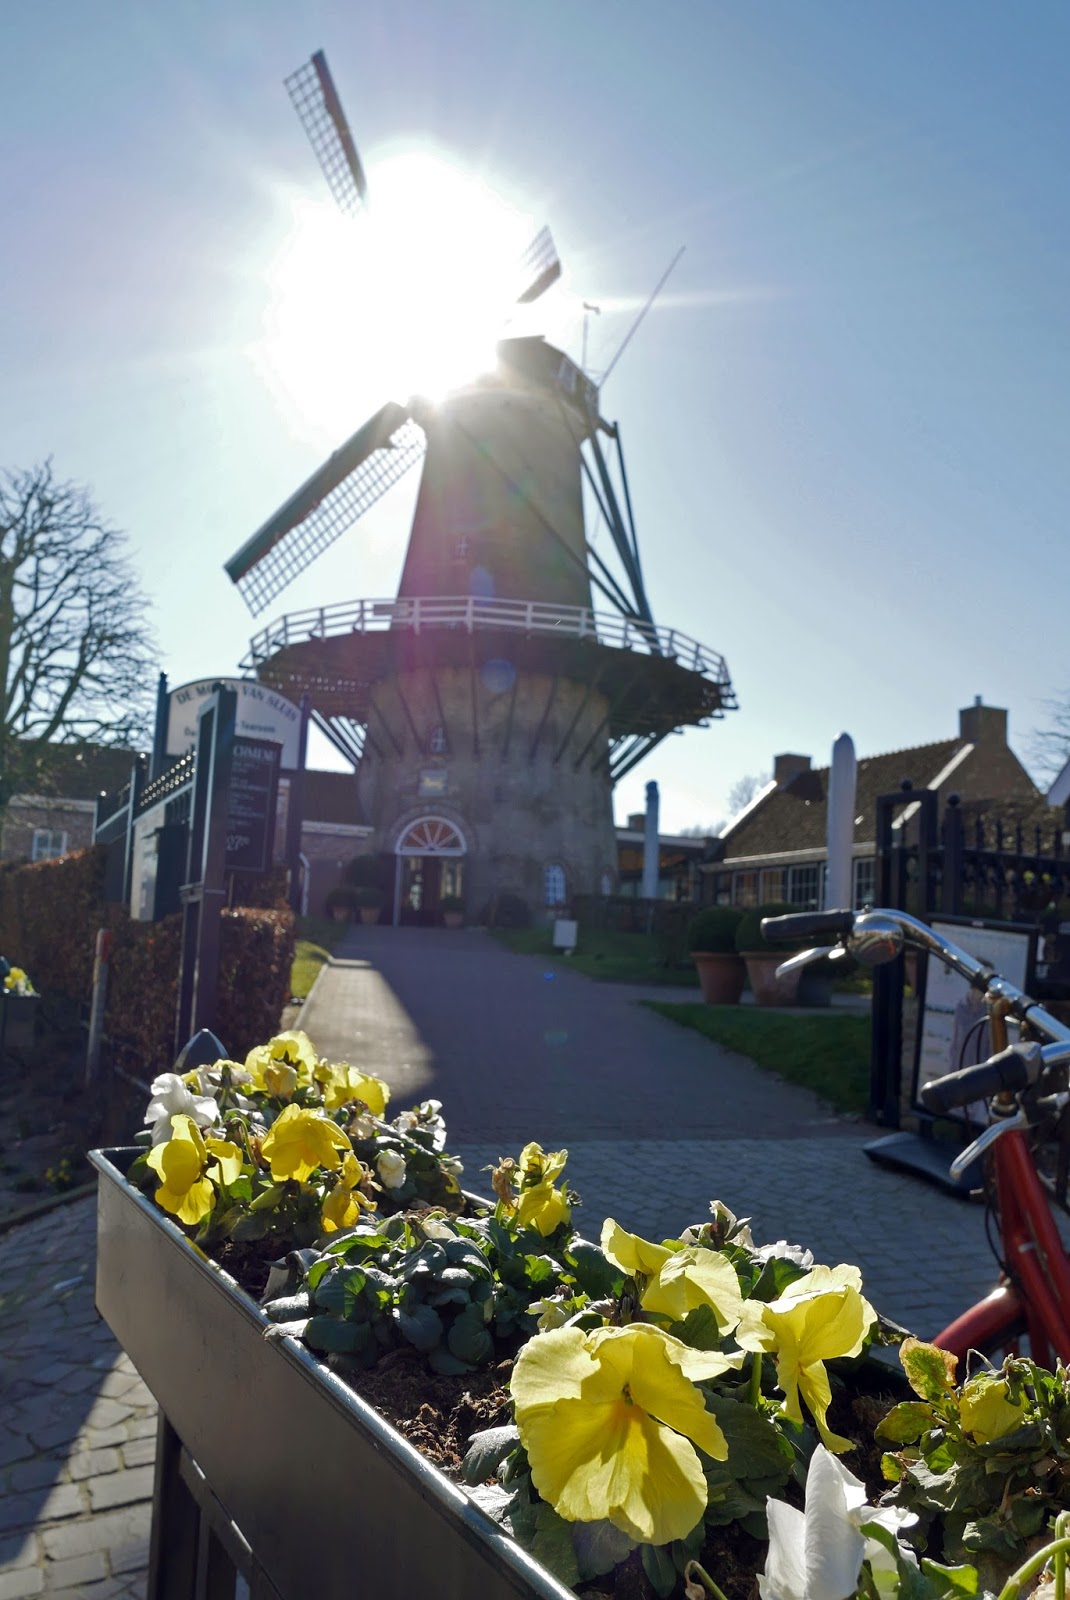 Windmill in Sluis, The Netherlands